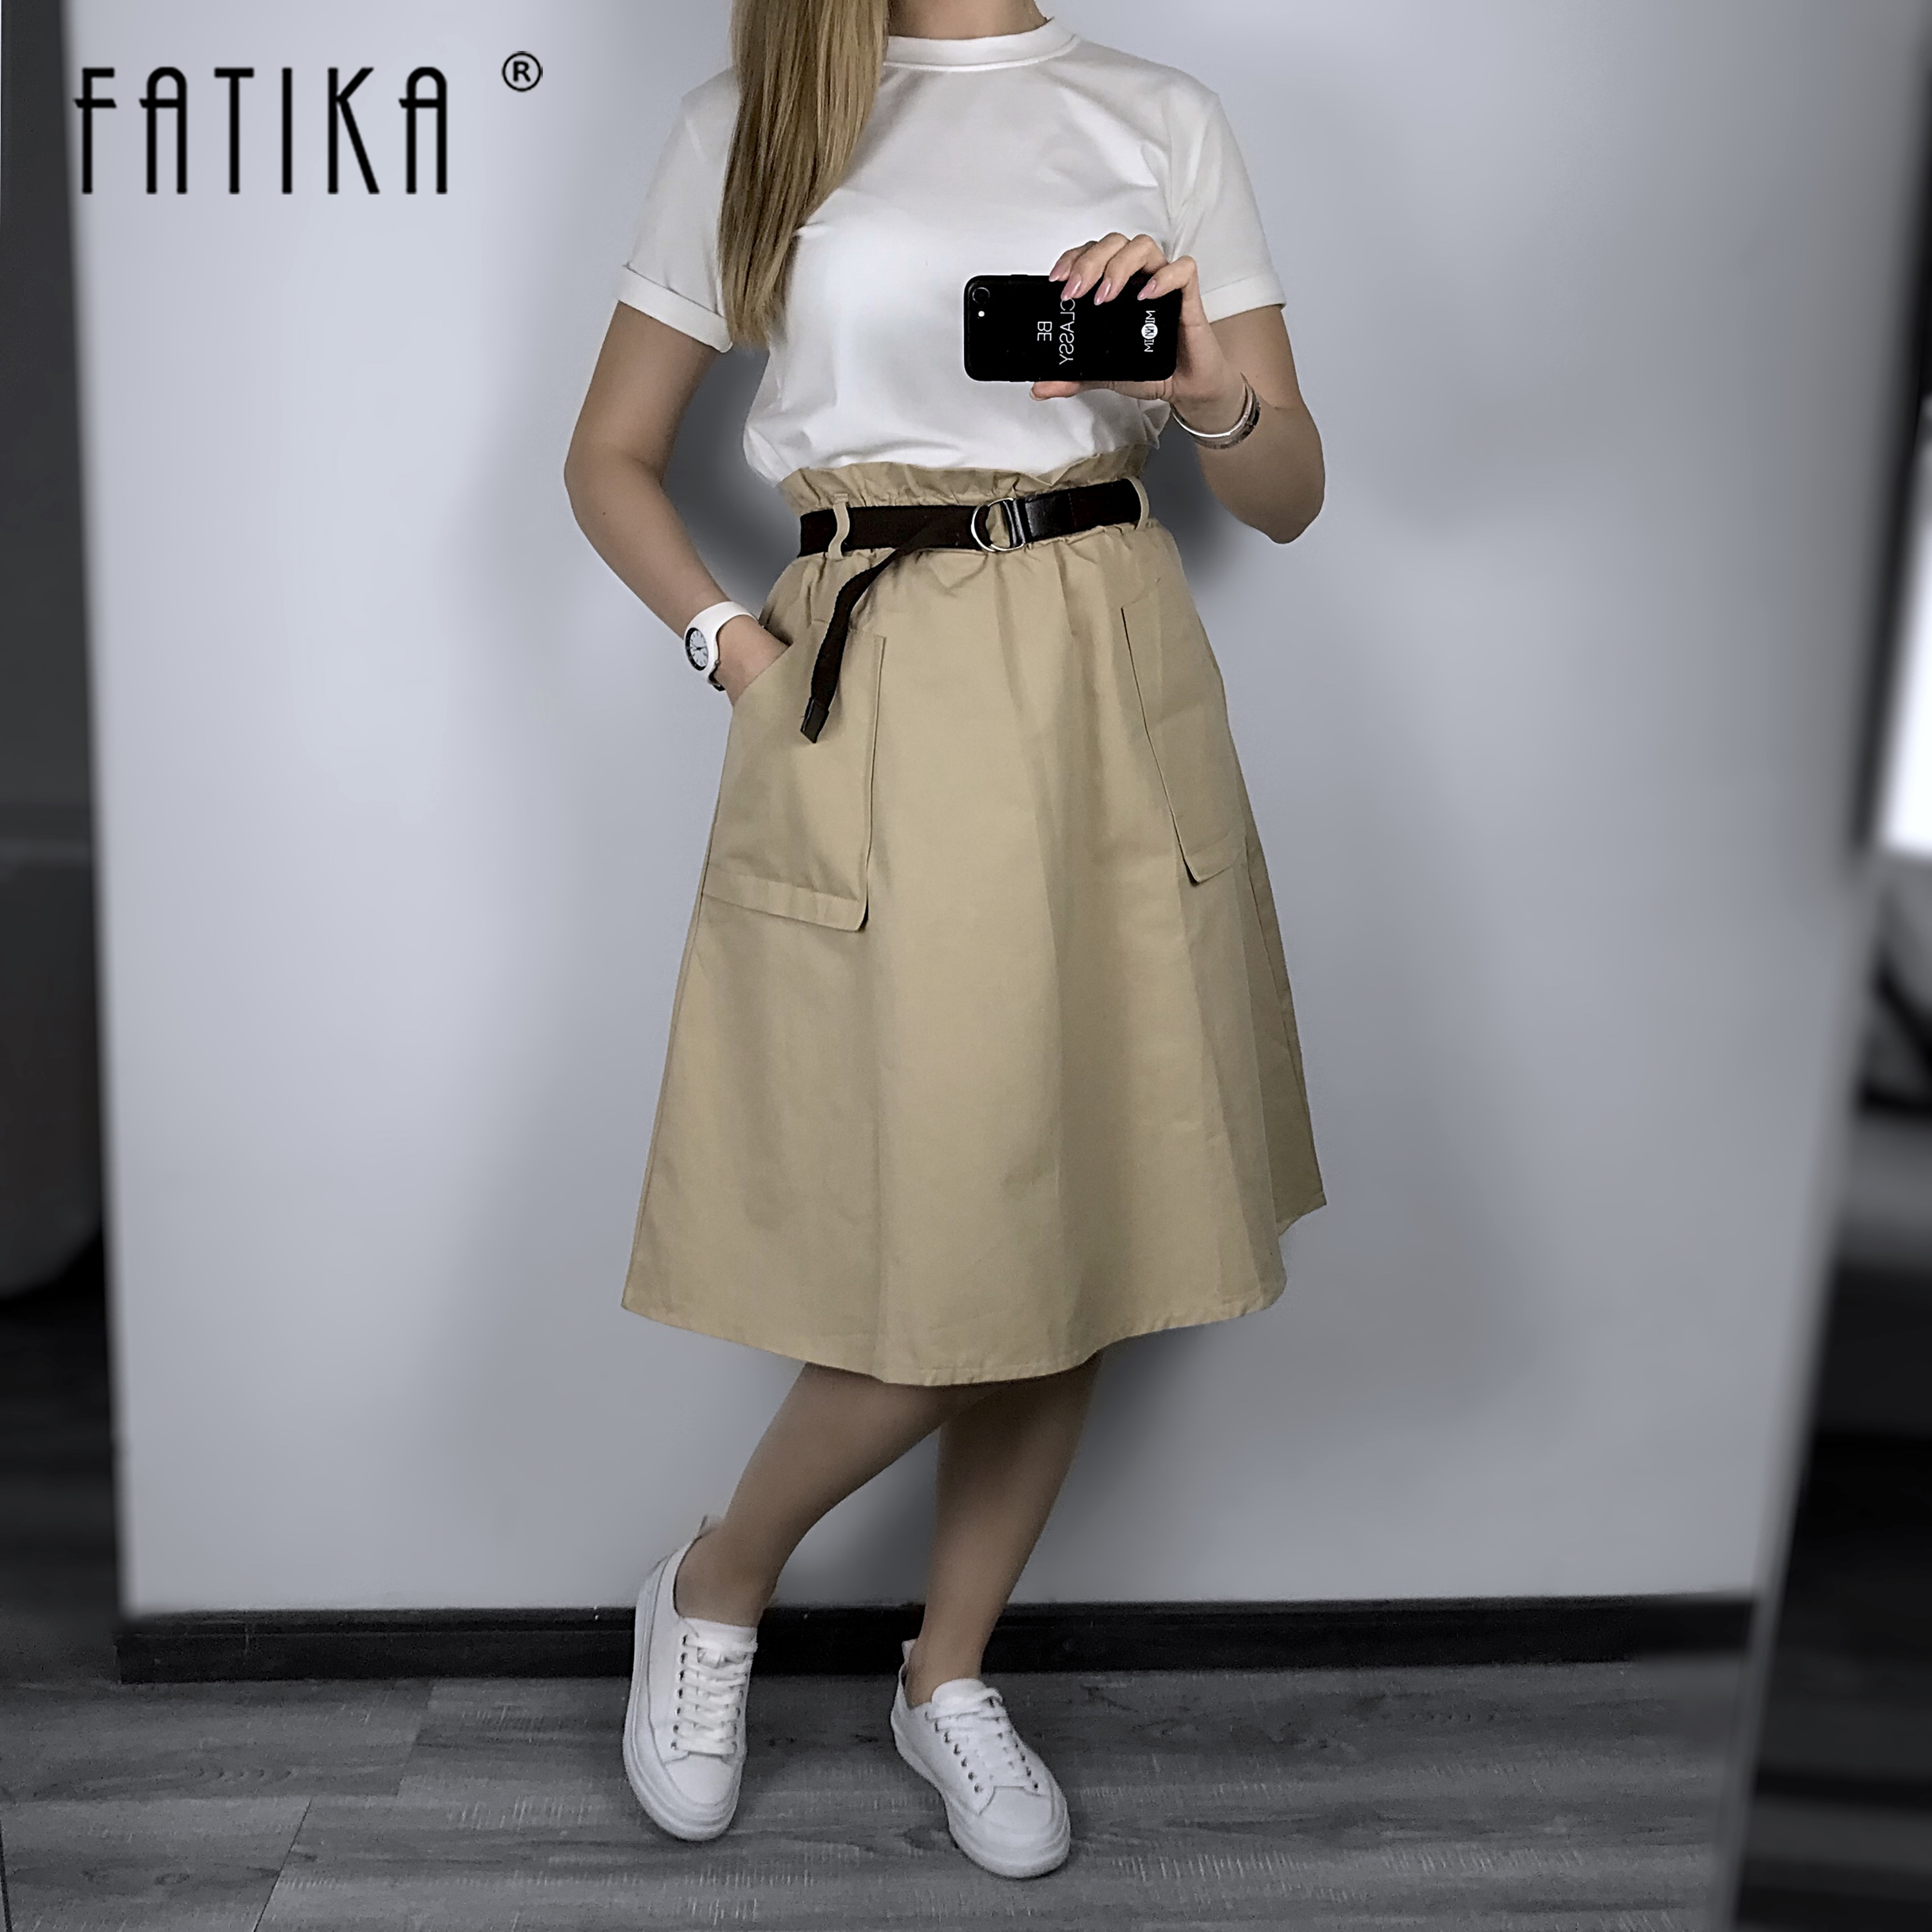 FATIKA Pure Color Pockets Midi Skirts Casual Ladies Bottoms Trendy Female Skirts With Sashes 2019 Hot New For Women